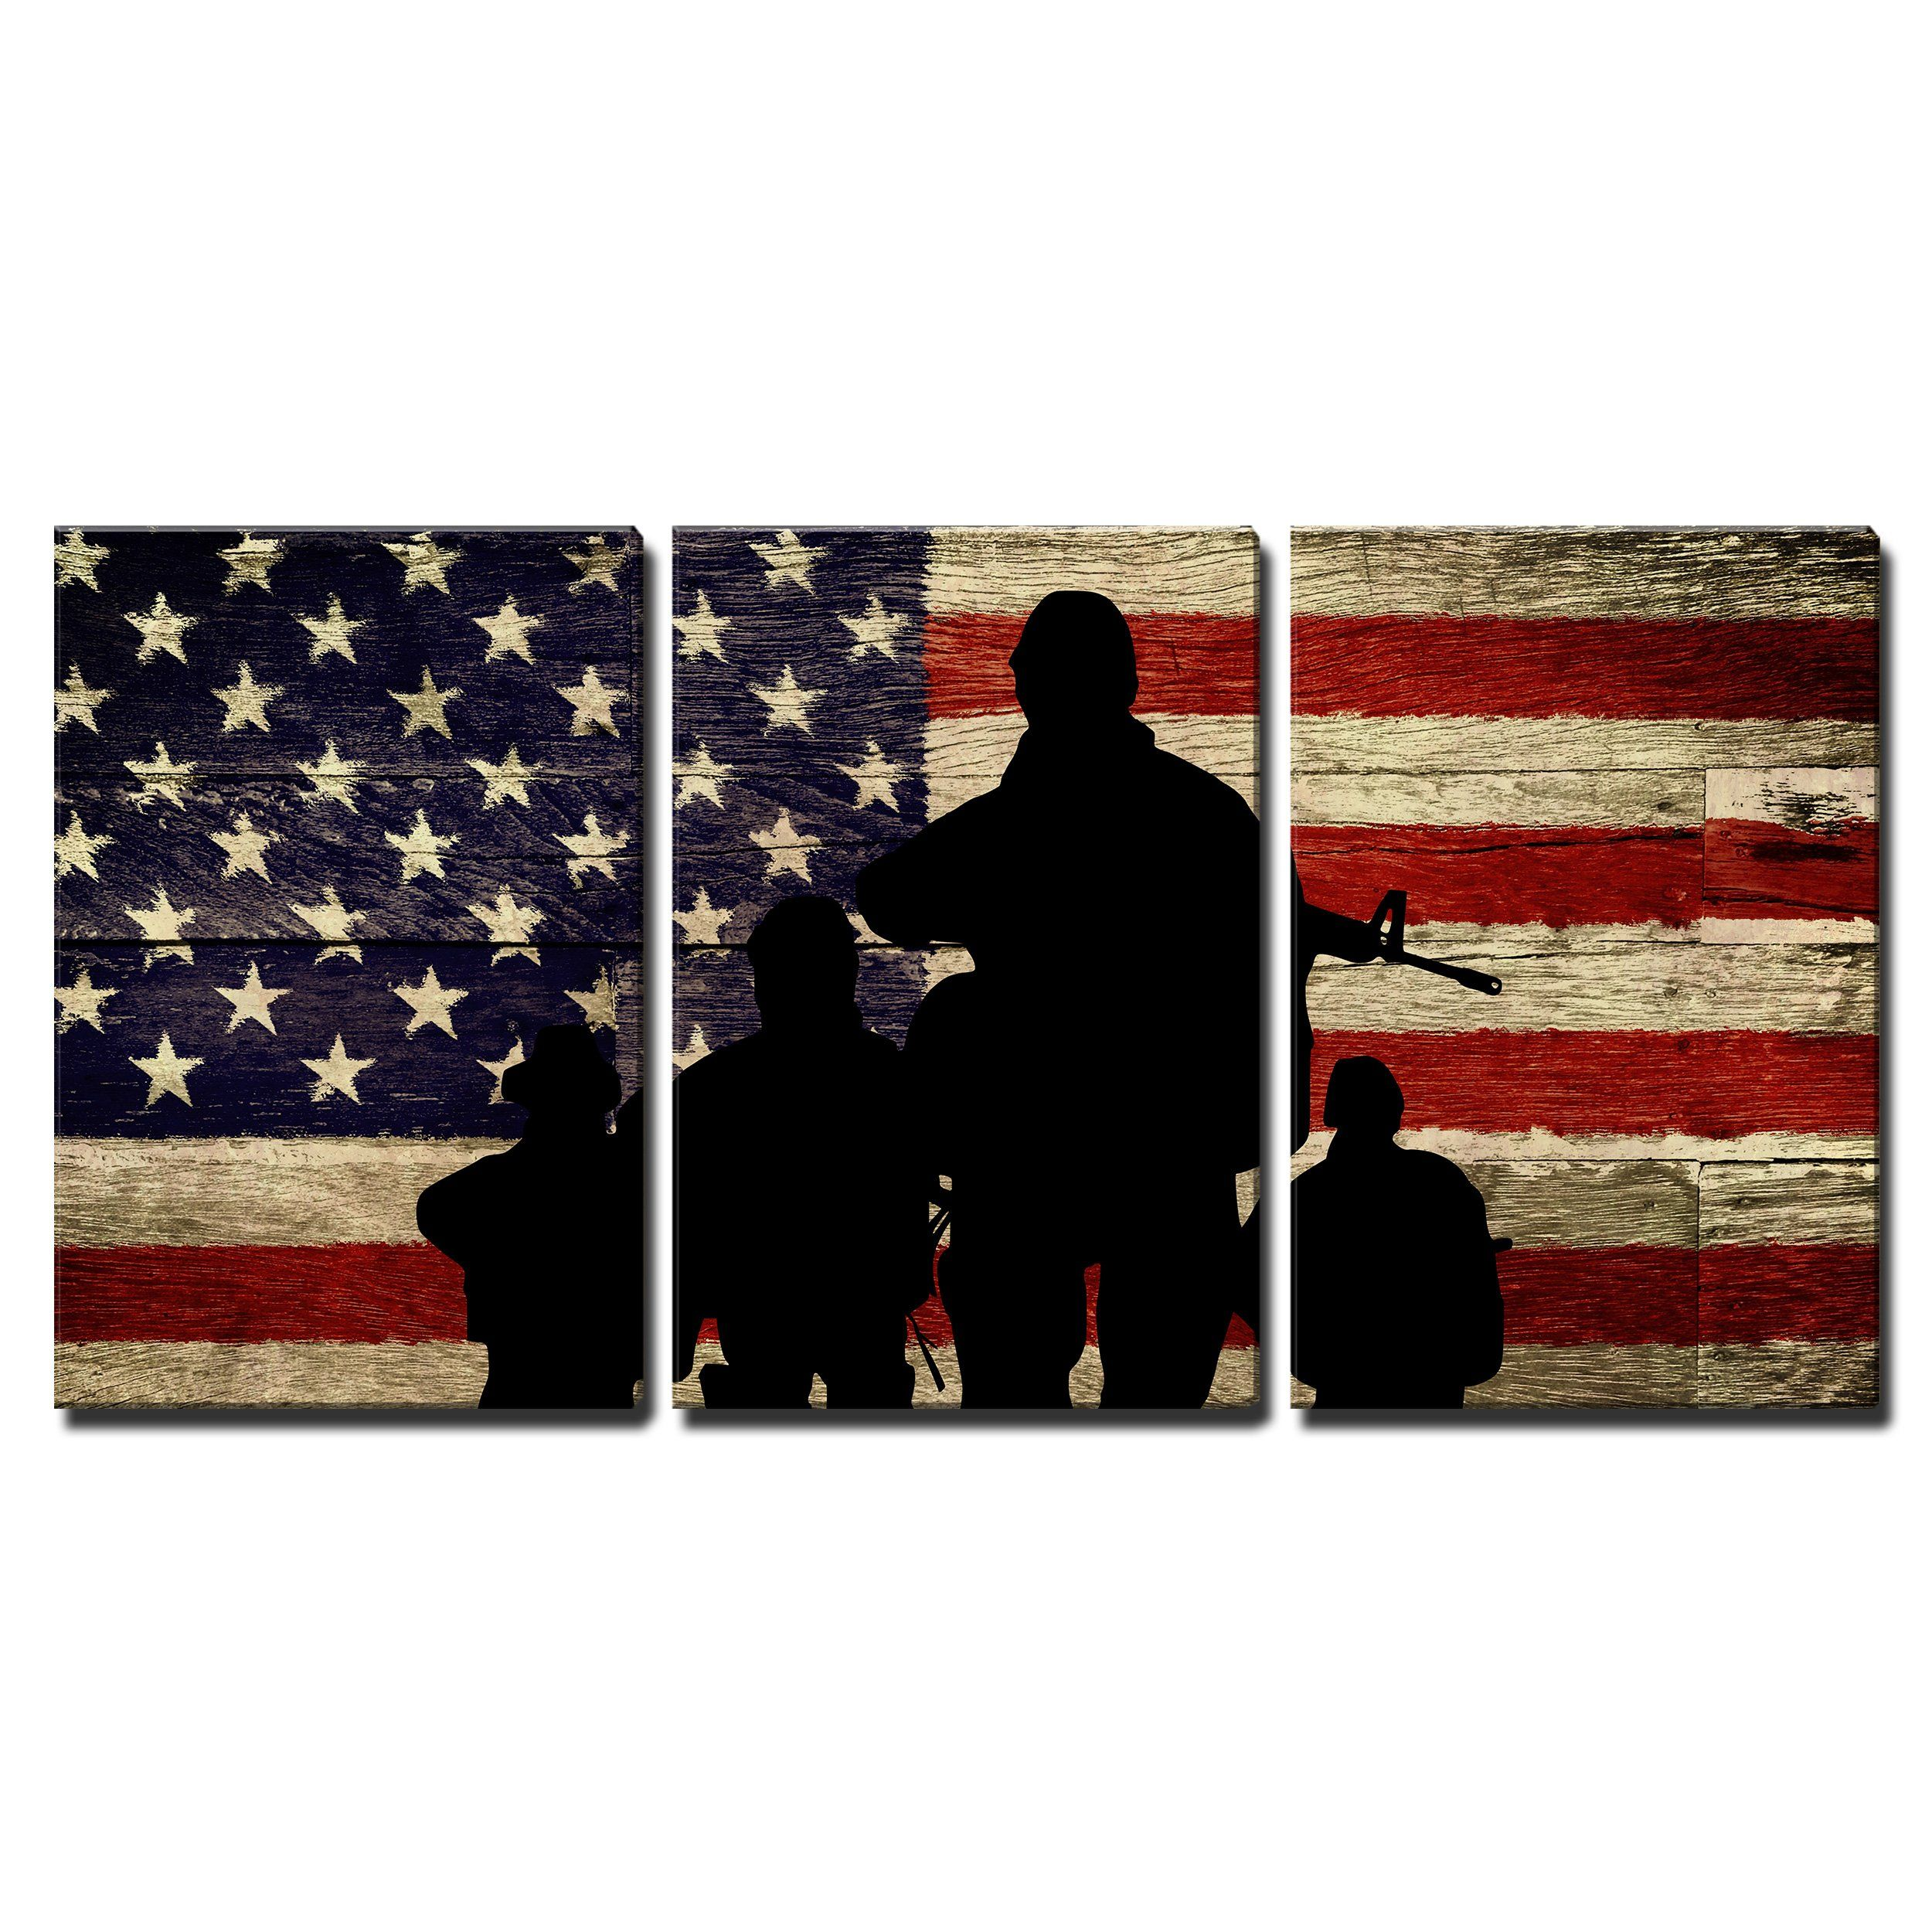 Wall26 3 Piece Canvas Wall Art Silhouette Of Troops On American Flag Background Modern Home De Canvas Art Wall Decor Blue Artwork Canvases Nature Canvas Art